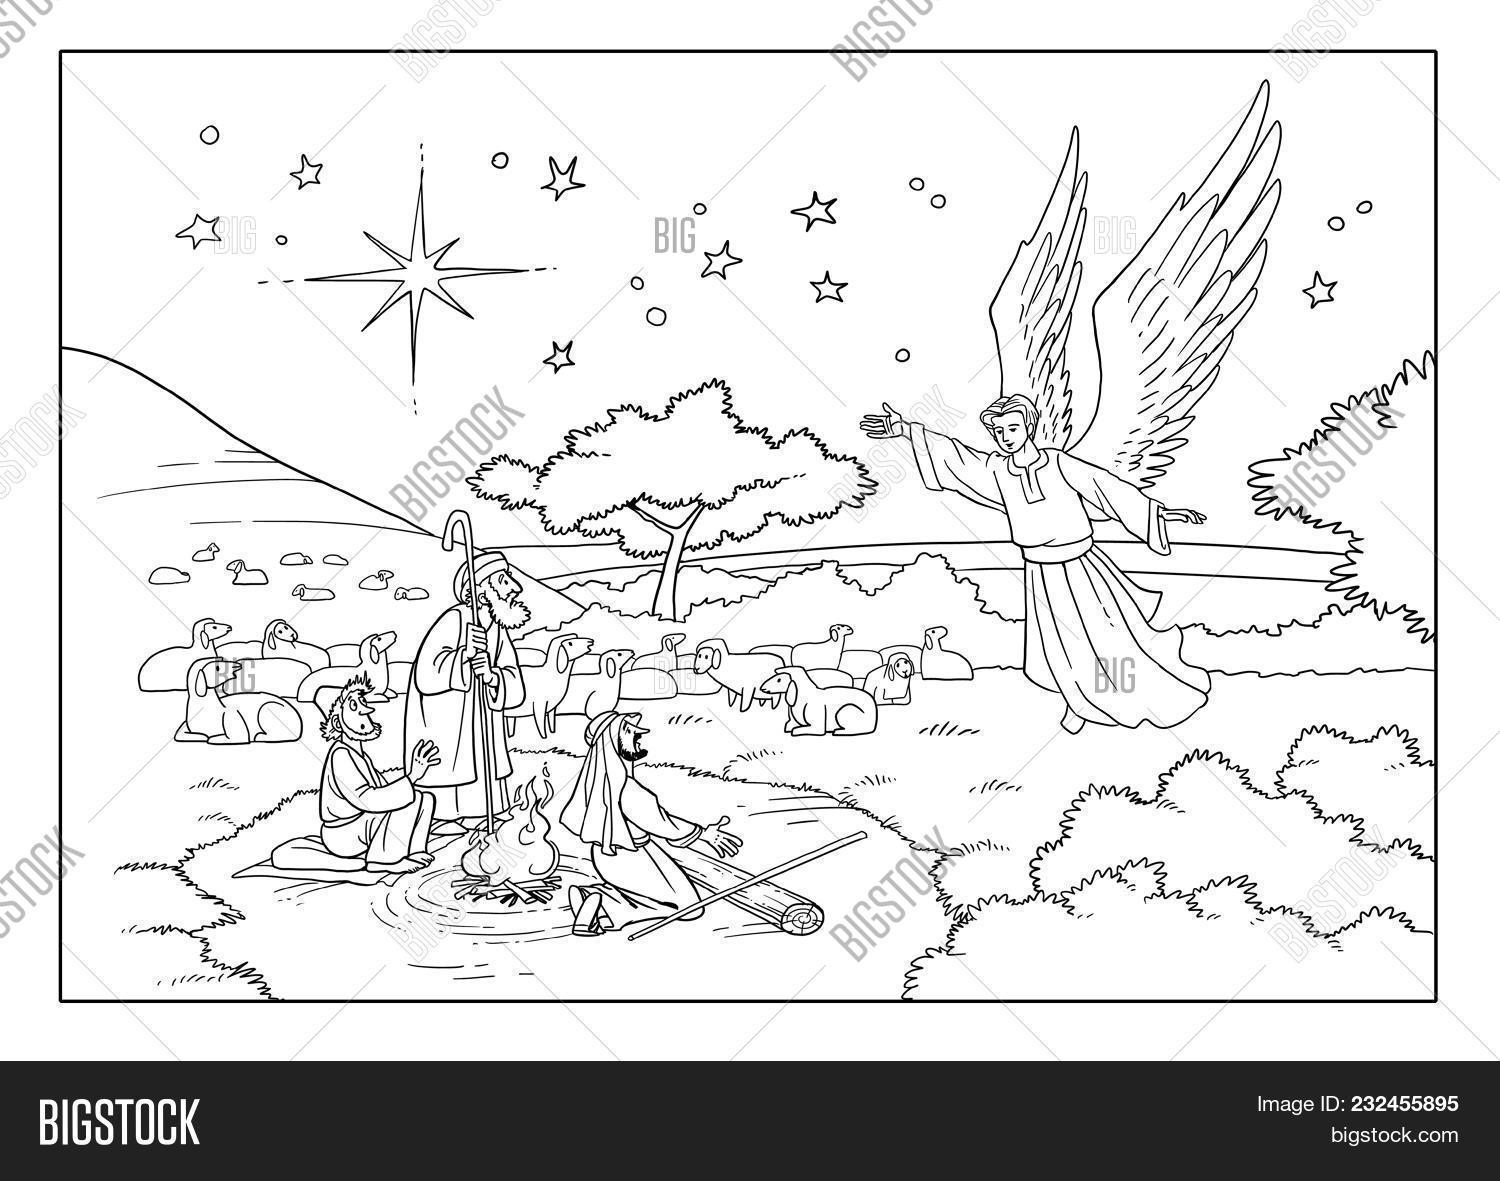 angel,bethlehem,bible,birth,cave,christ,christianity,christmas,crib,earth,faith,field,fire,god,good,hay,infant,israel,jerusalem,jesus,joseph,joy,light,mary,messiah,newborn,night,nursery,praise,prophecy,religion,righteousness,salvation,savior,sheep,shepherd,shine,star,story,testament,wings,wonder